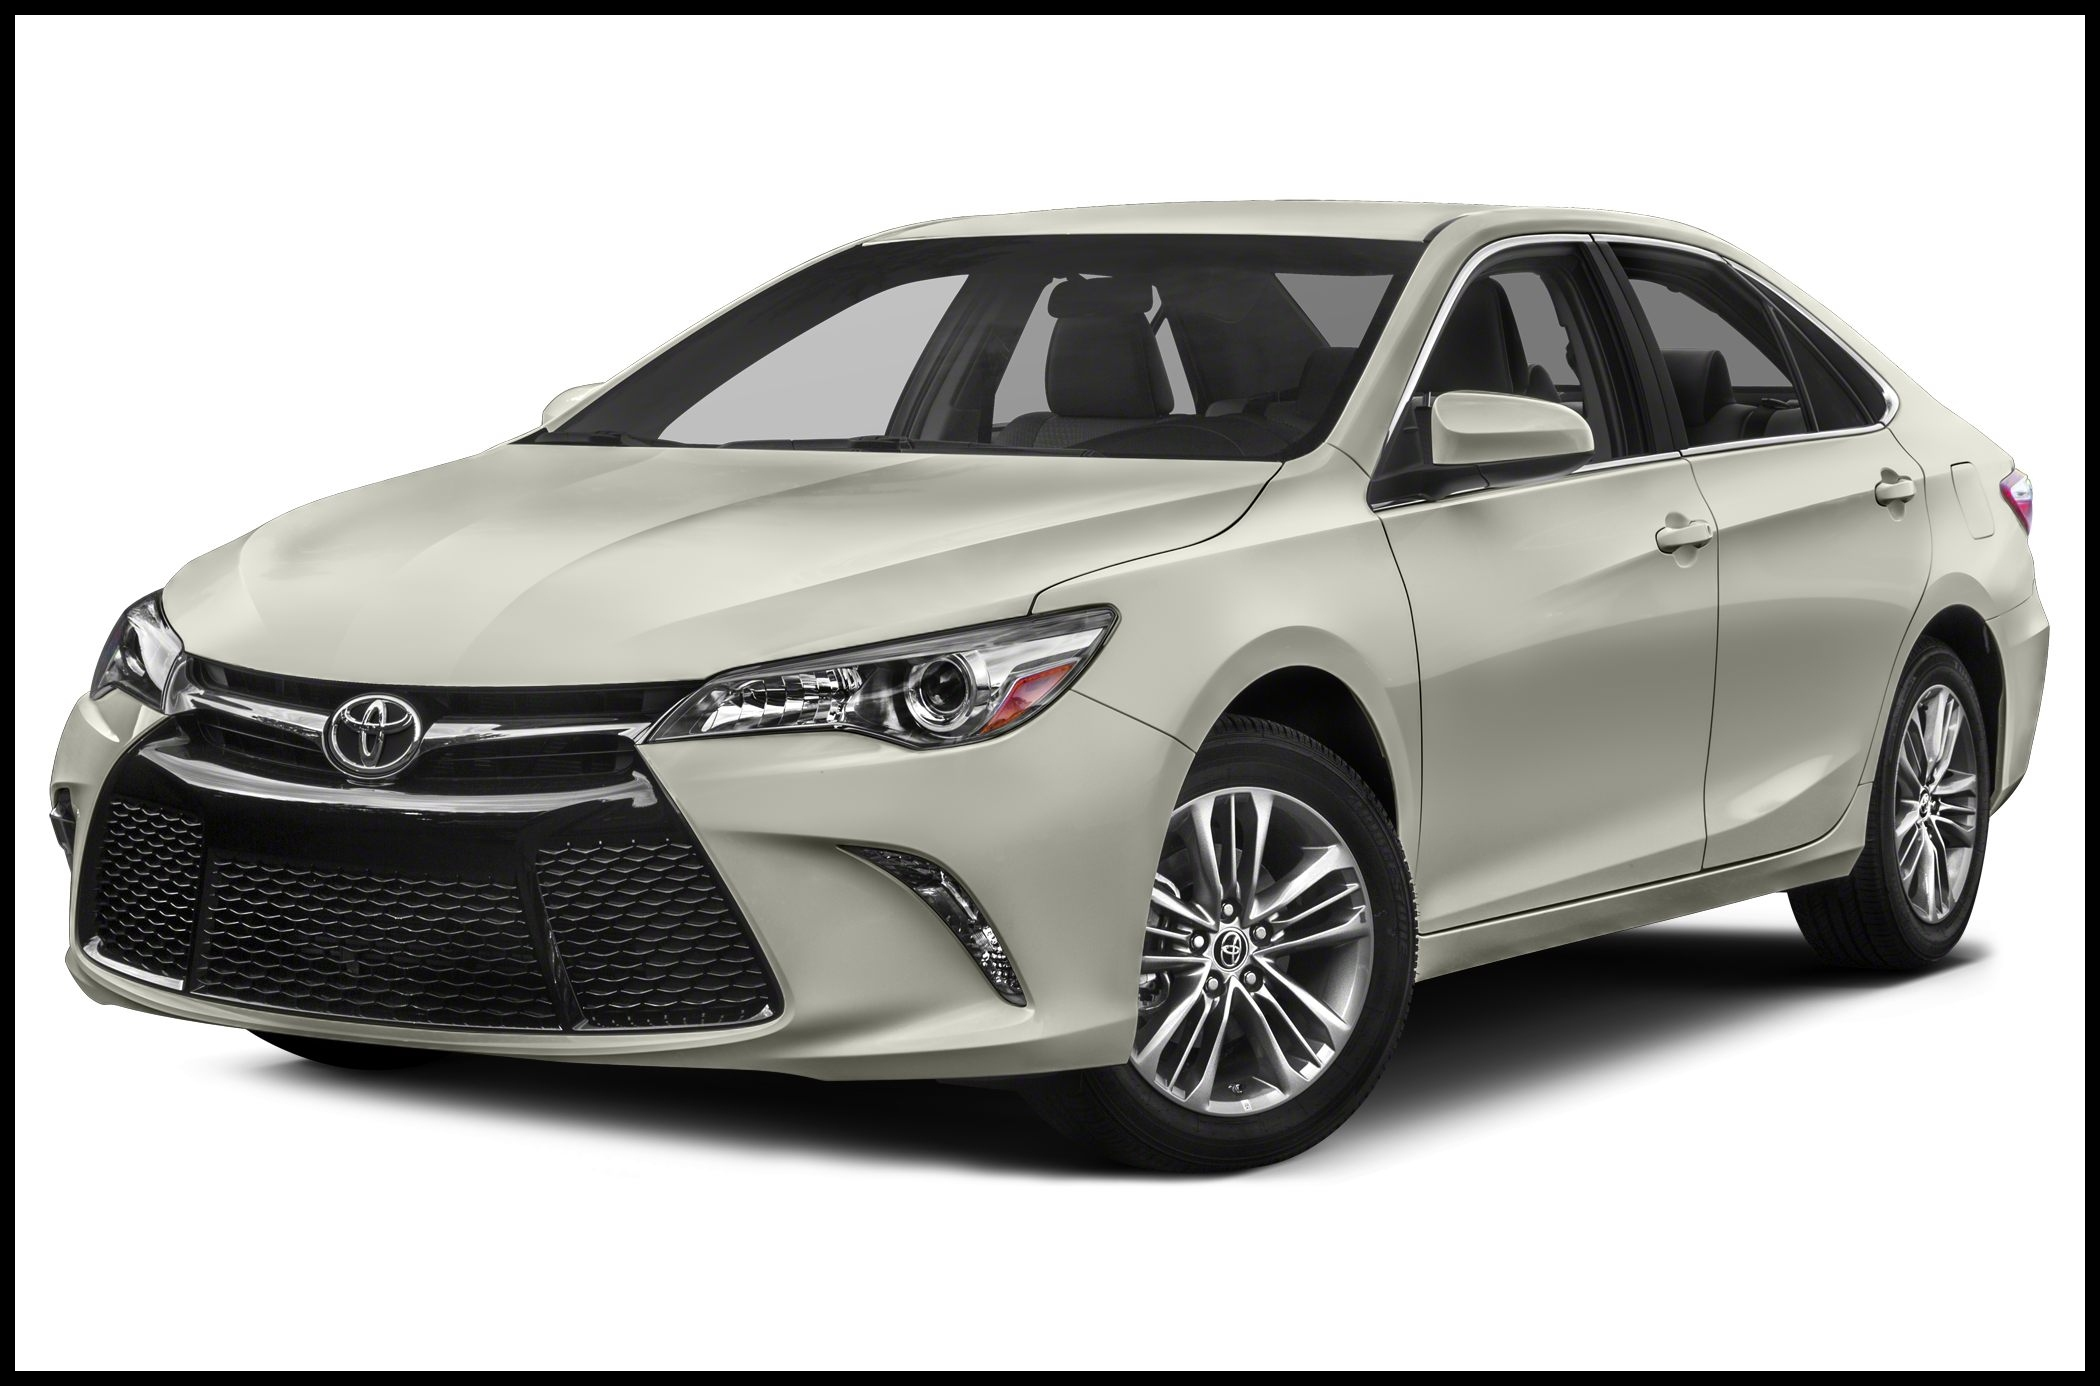 2006 toyota Camry Le 2017 toyota Camry Se 4dr Sedan Safety Features